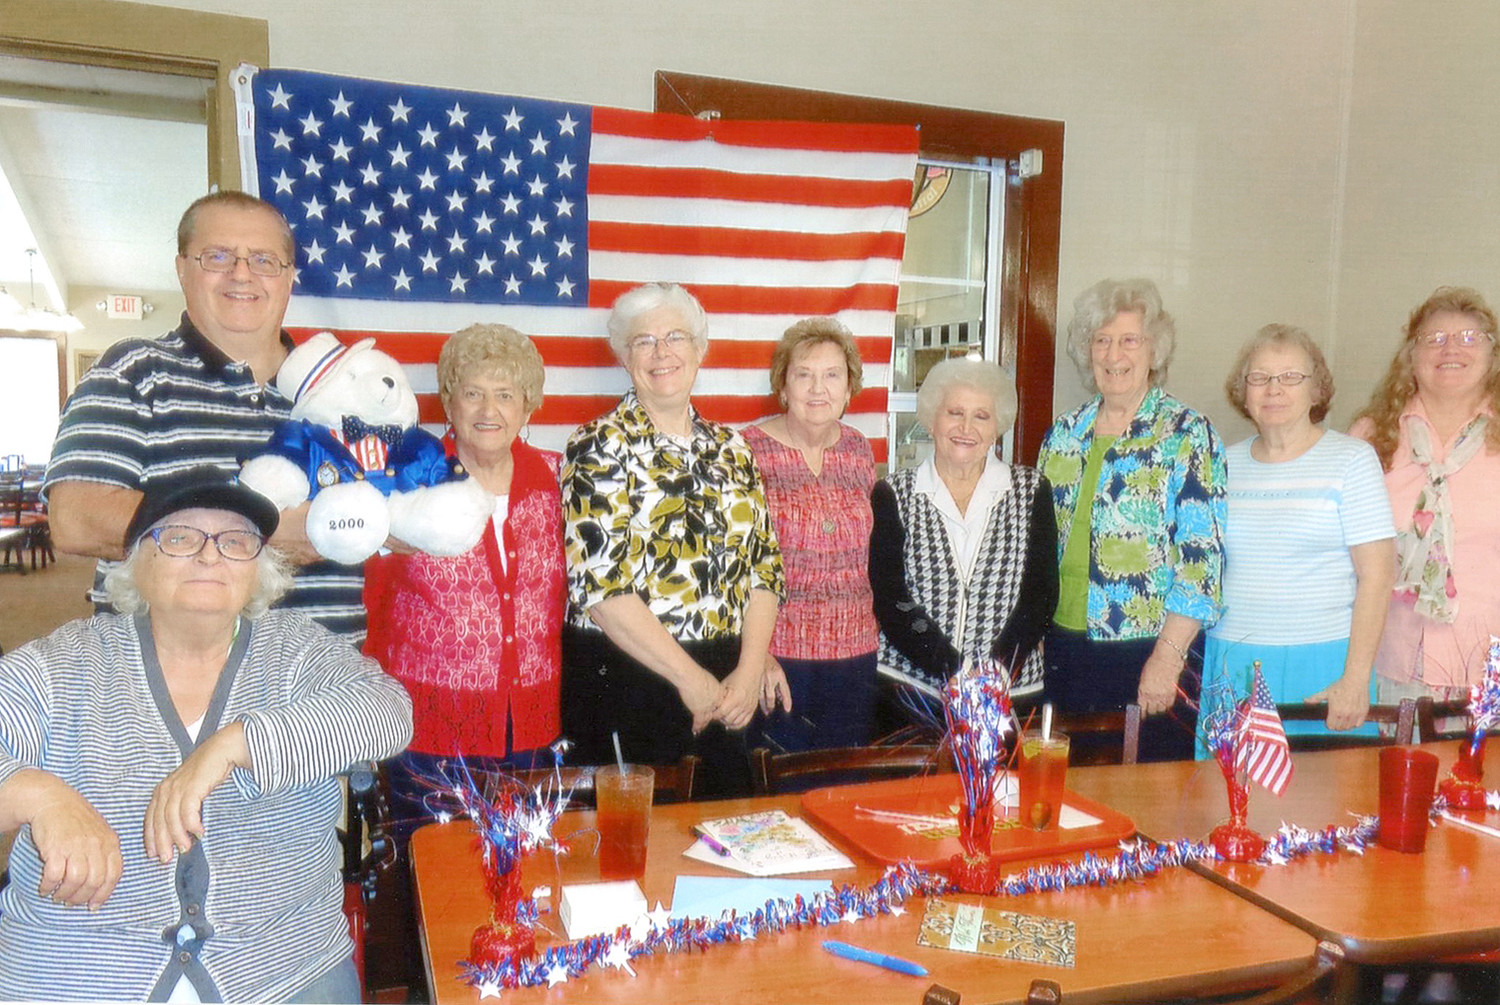 The United Club met at Golden Corral on Sept. 24. From left are Martha Ledford, front, Shawn Markie, Martha Bostic, Vicki Smith, Pat Thompson, Shirley Shadden, Bettie Marlowe, Hilda Sutton and Barbara Hargraves.